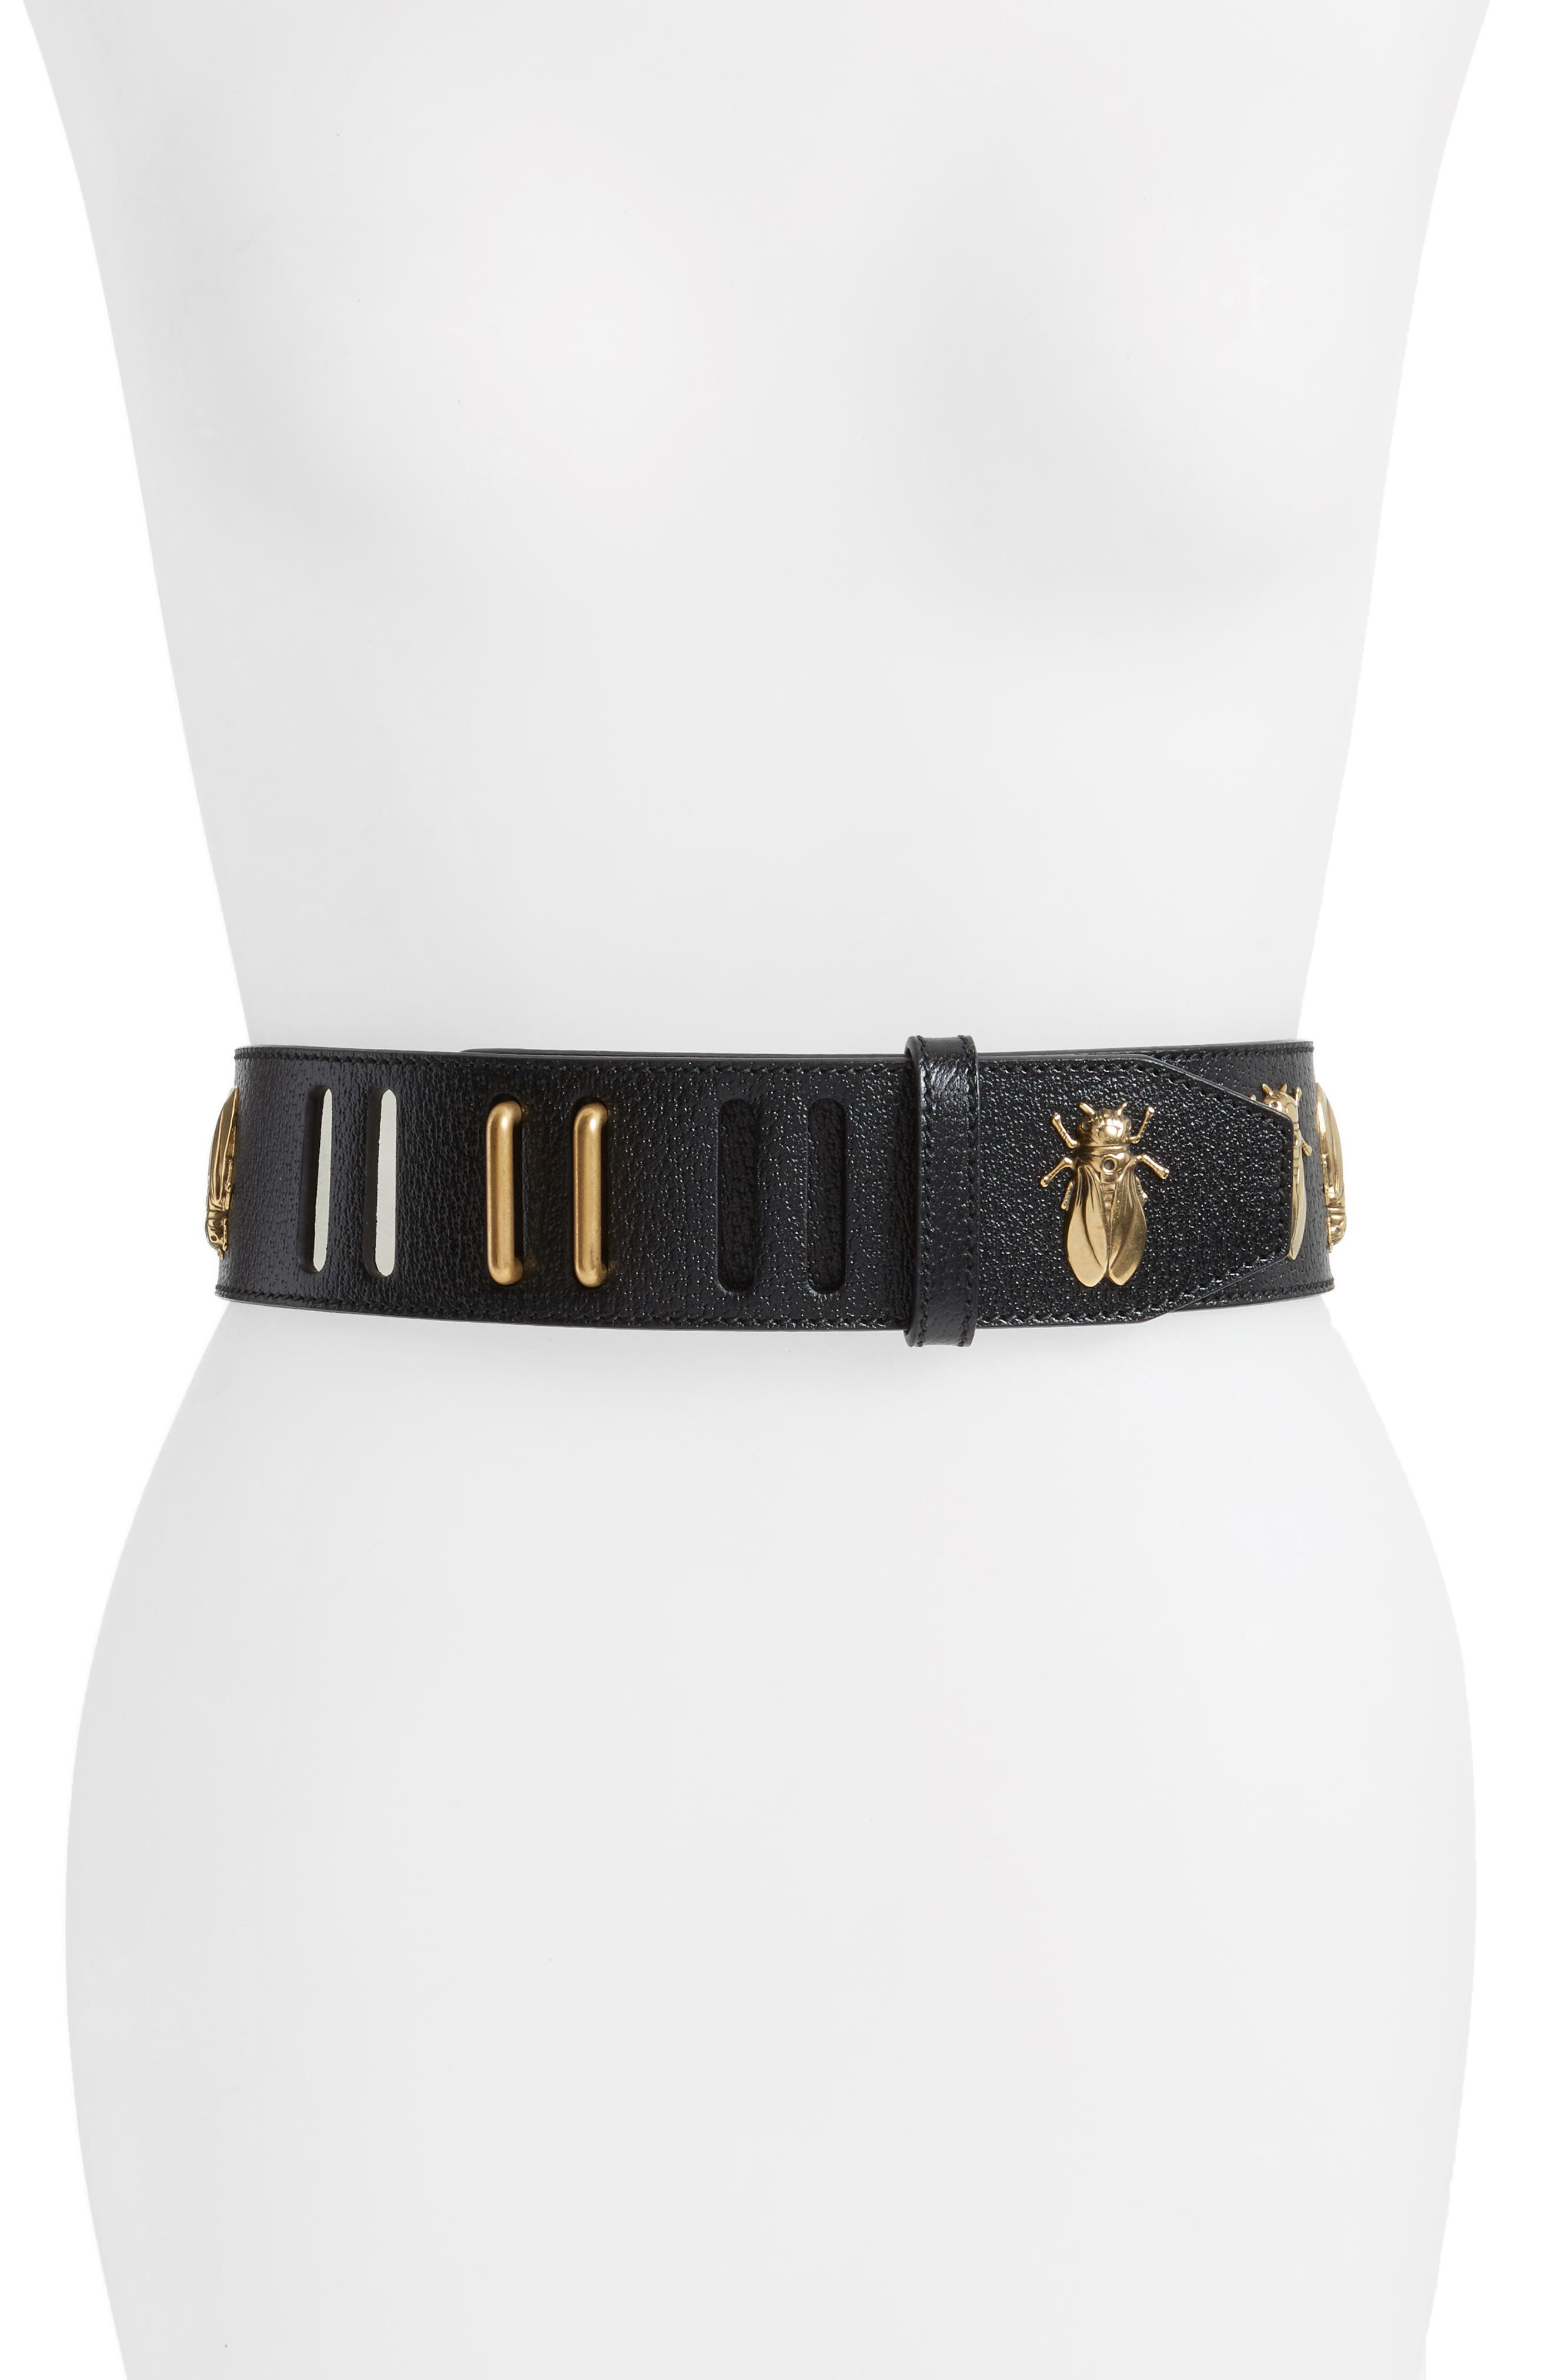 Bees Leather Belt,                         Main,                         color,